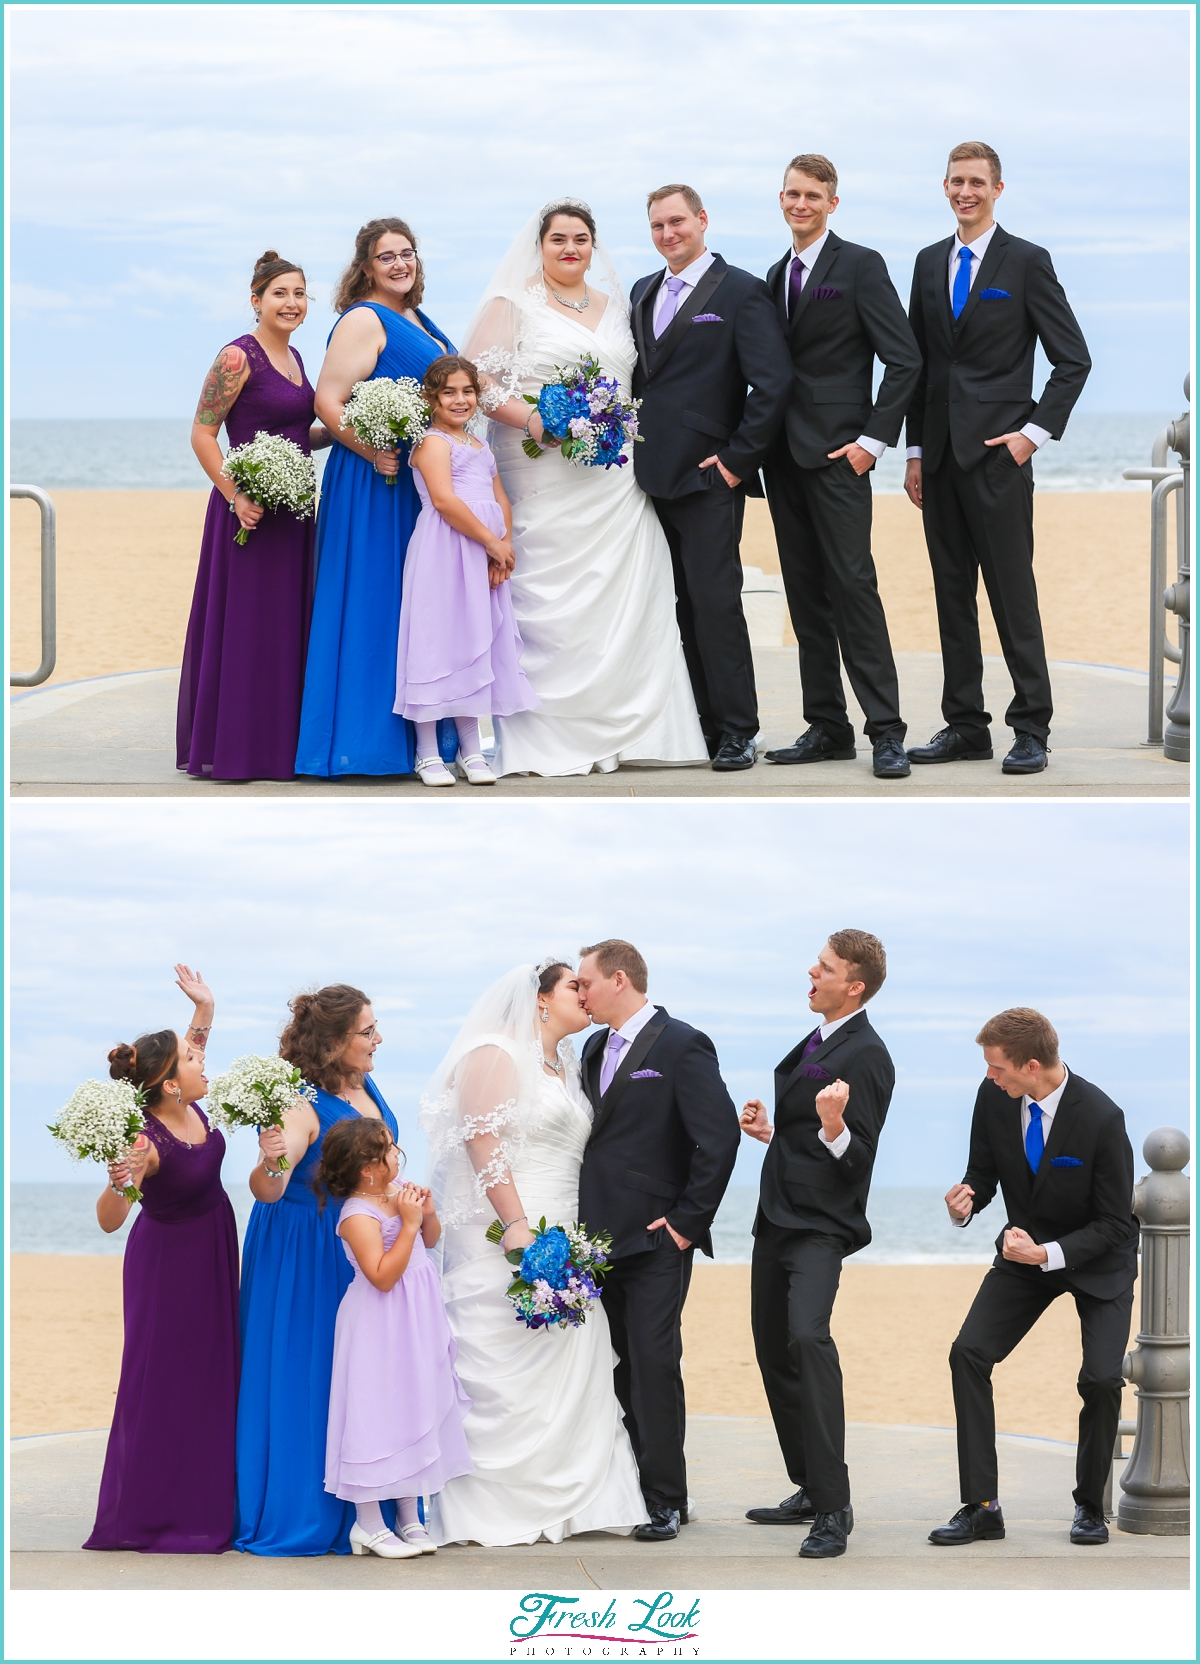 bridal party photos on the beach